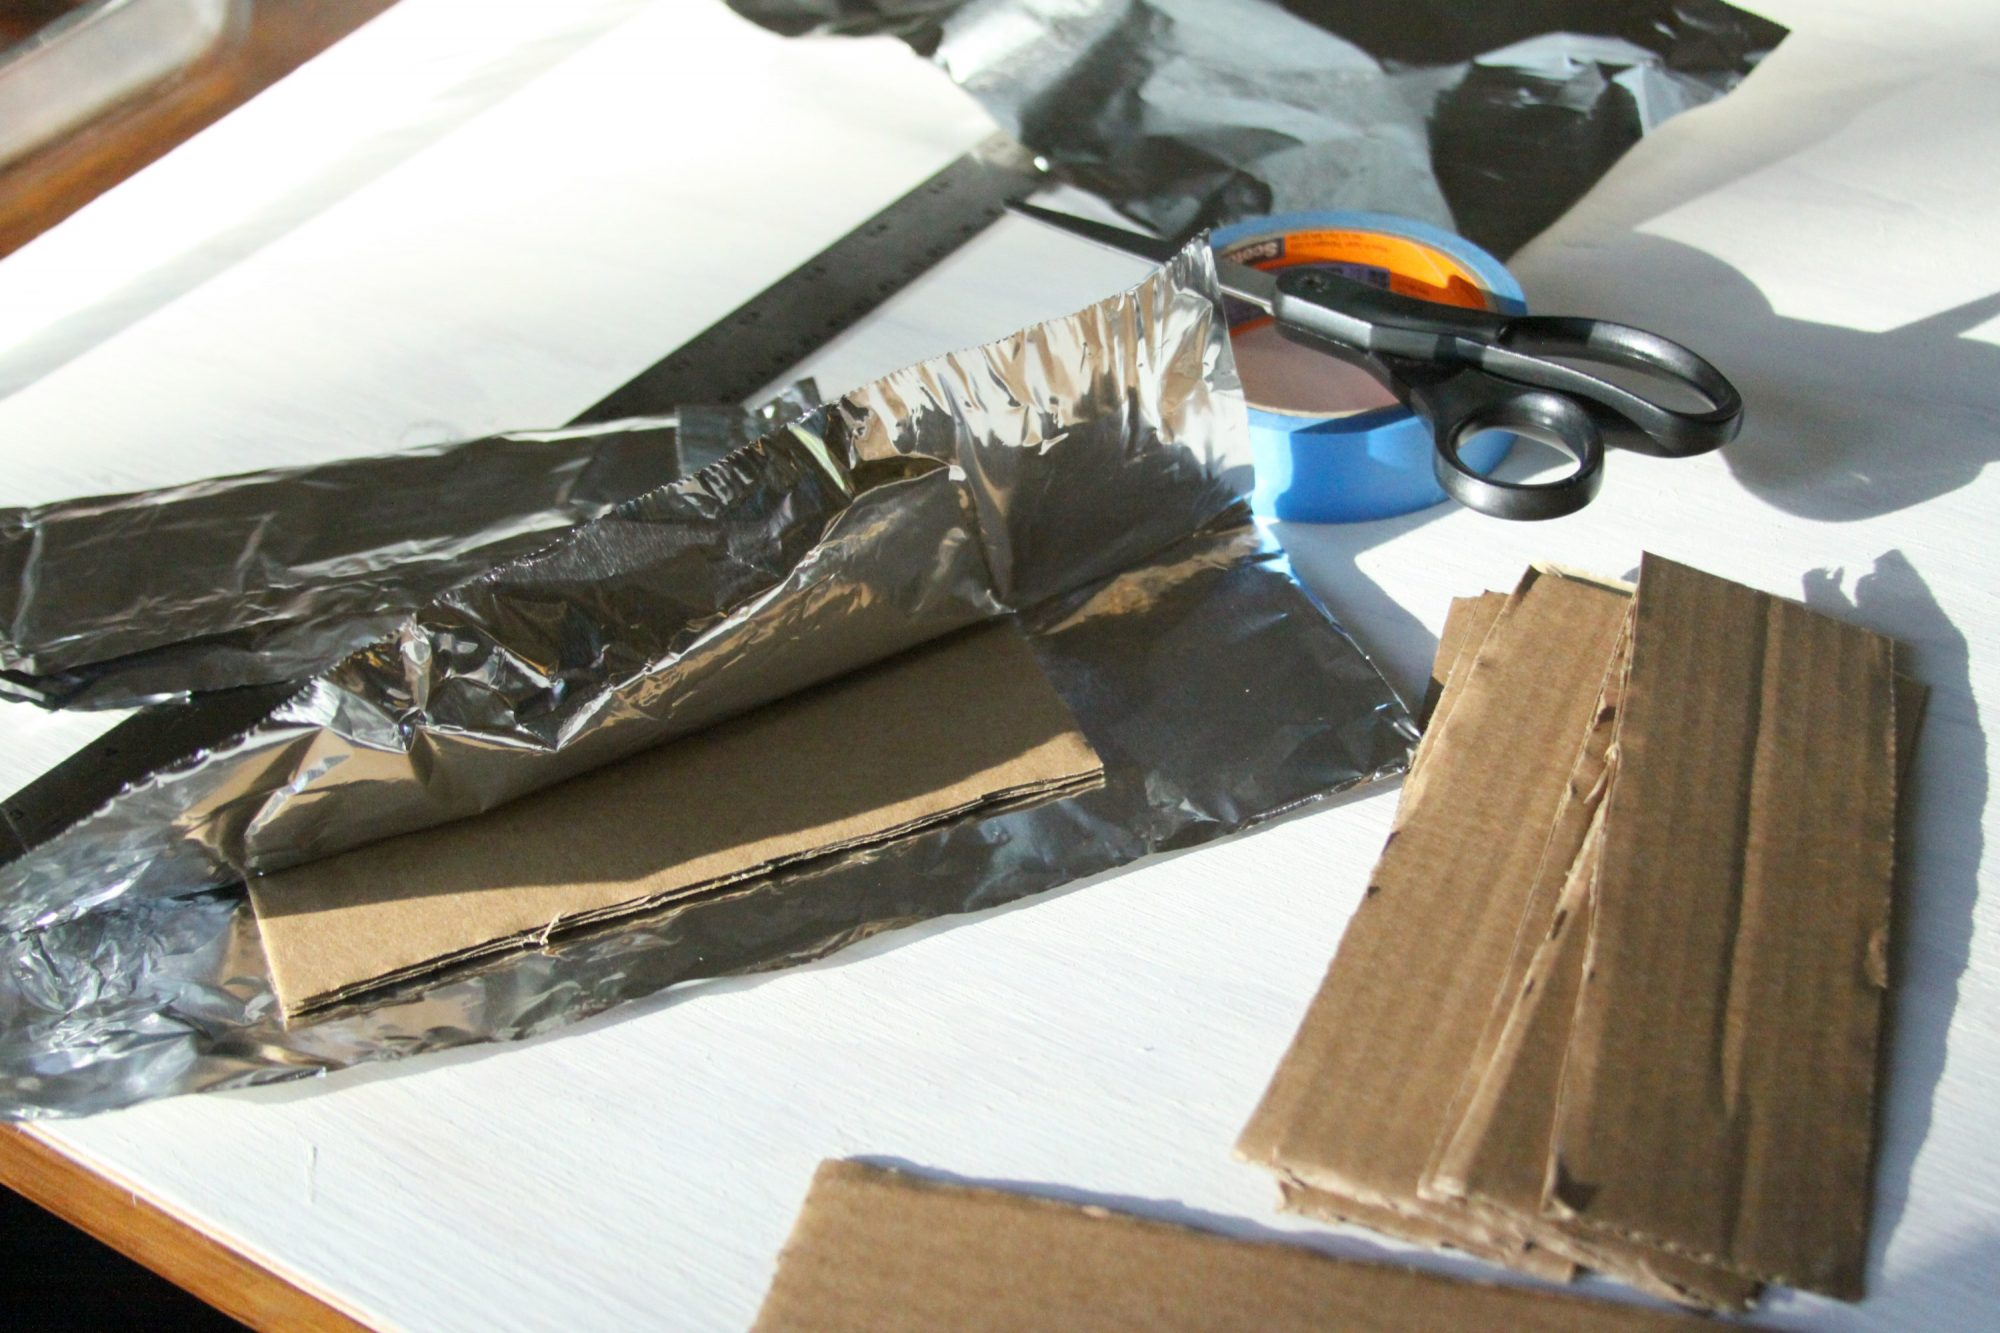 cardboard partitions wrapped in foil